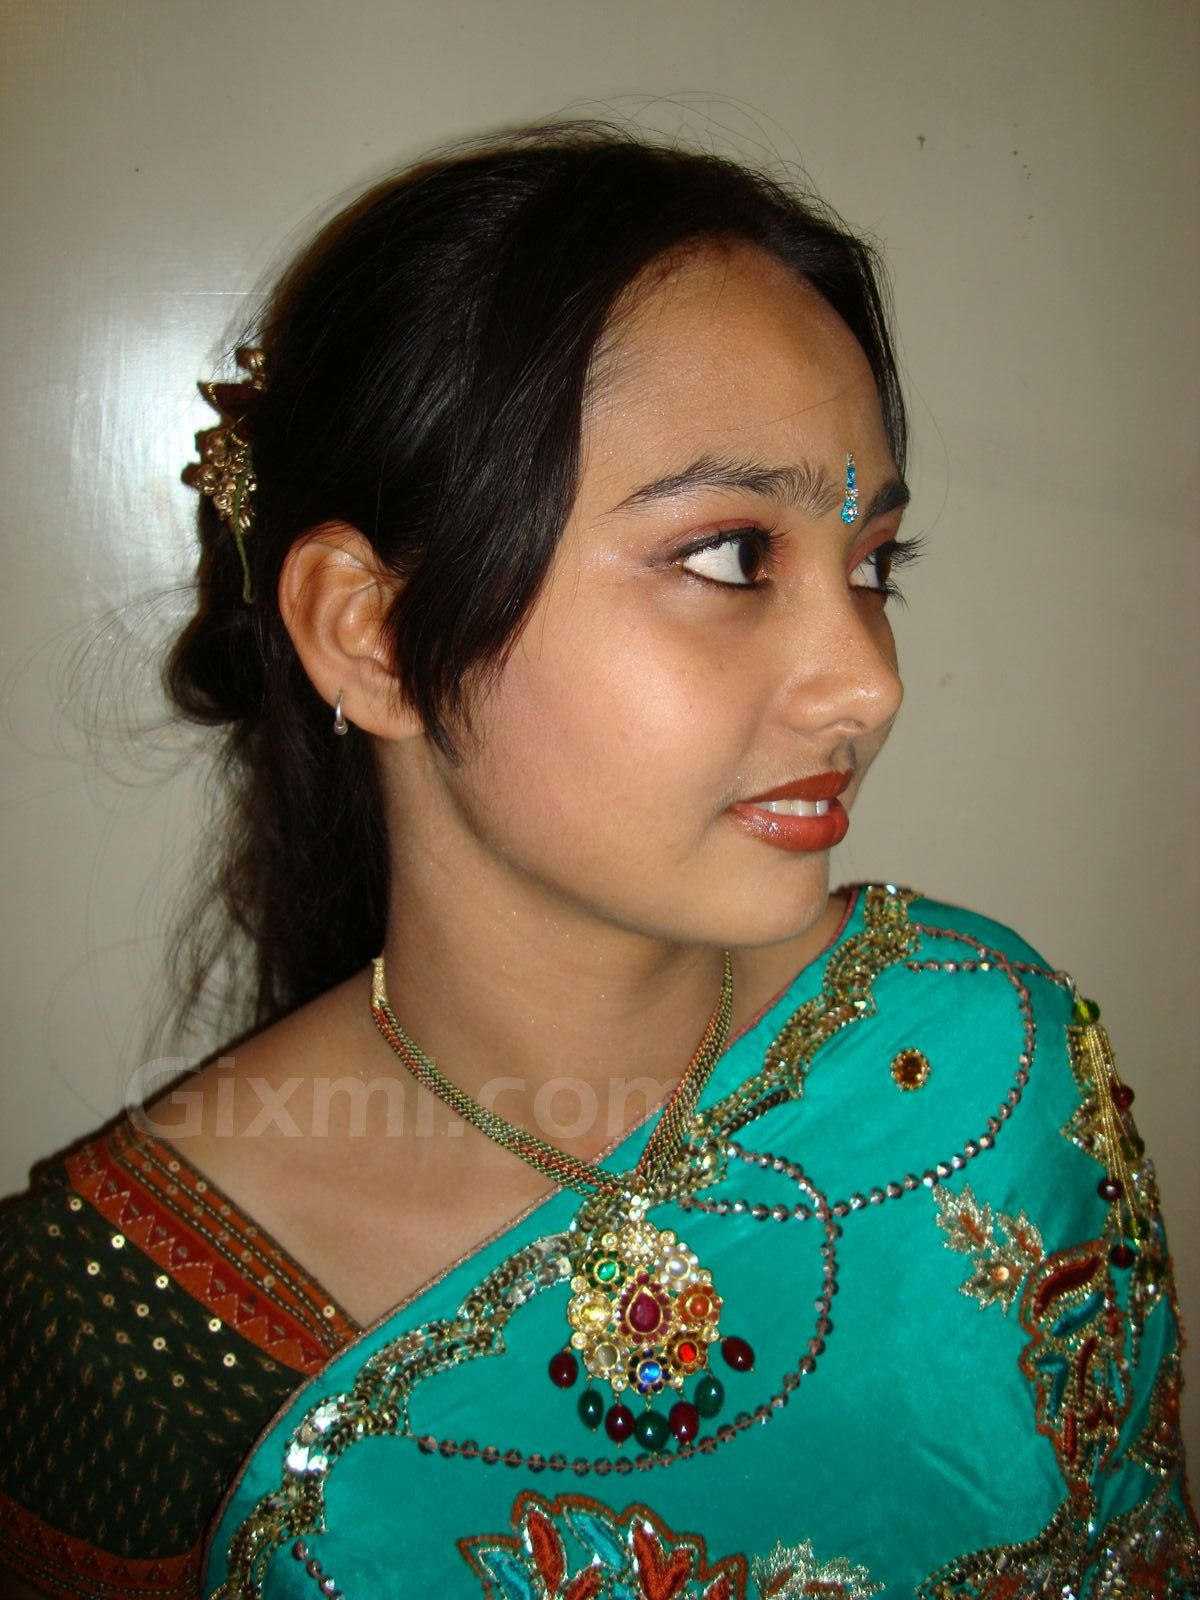 pakistani girls pictures  chittagong young girl ready for party